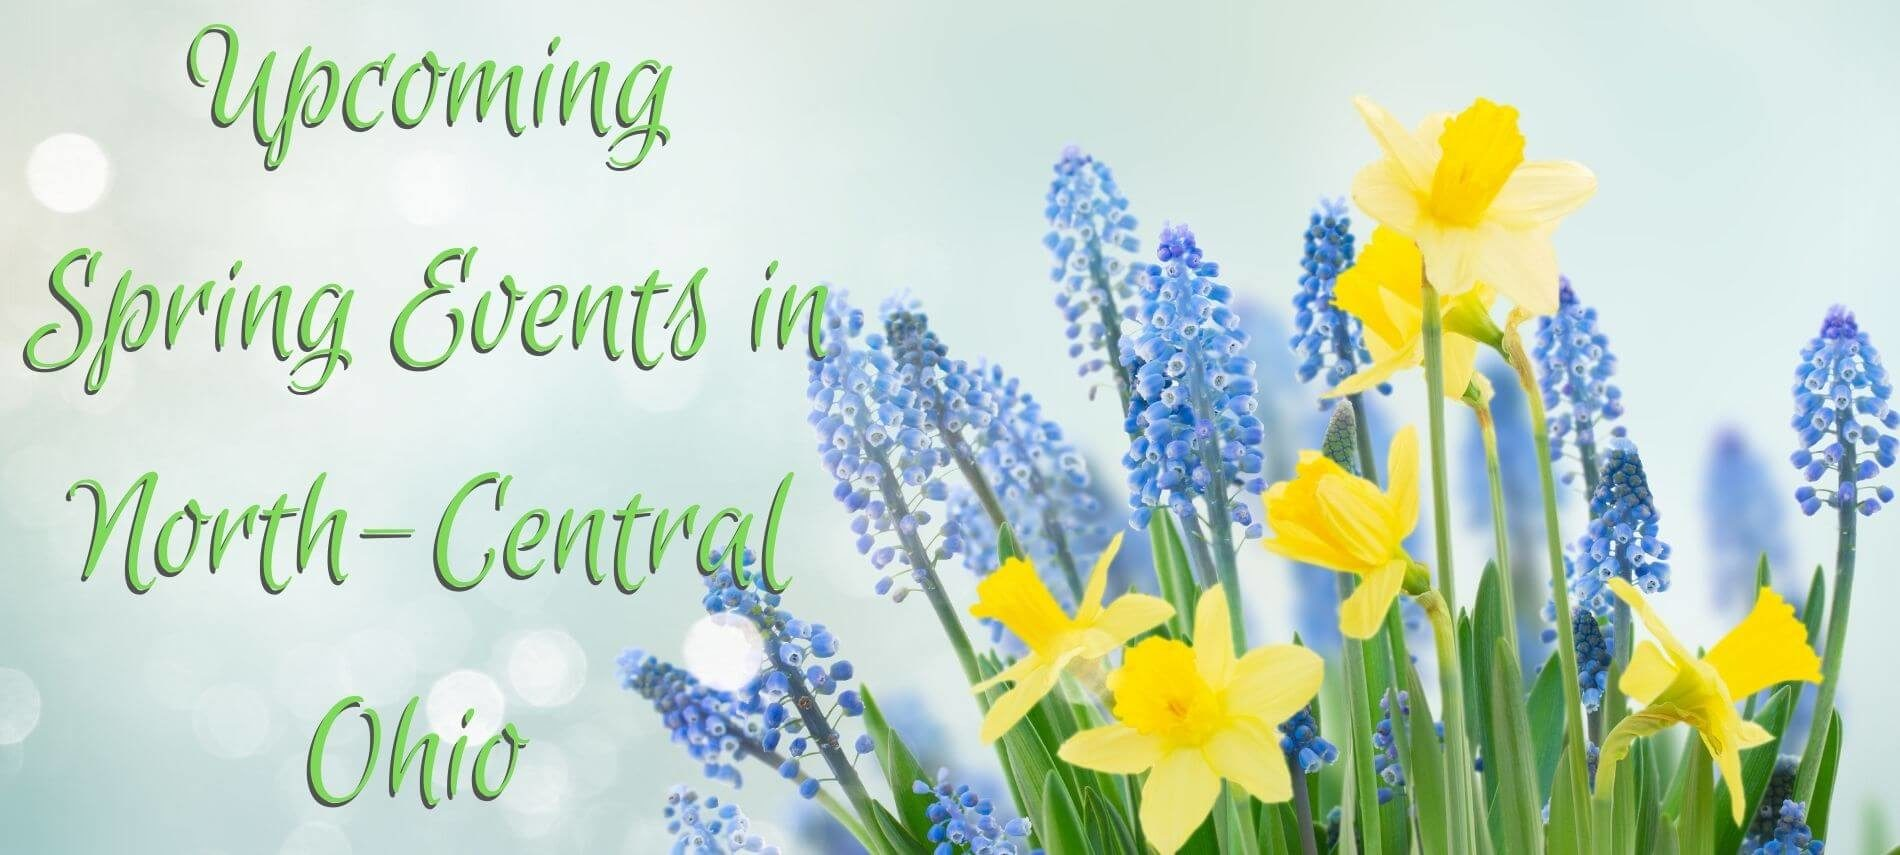 Yellow daffodils and Lavender Lilacs on a white background with the words Upcoming Spring Events in North-Central Ohio